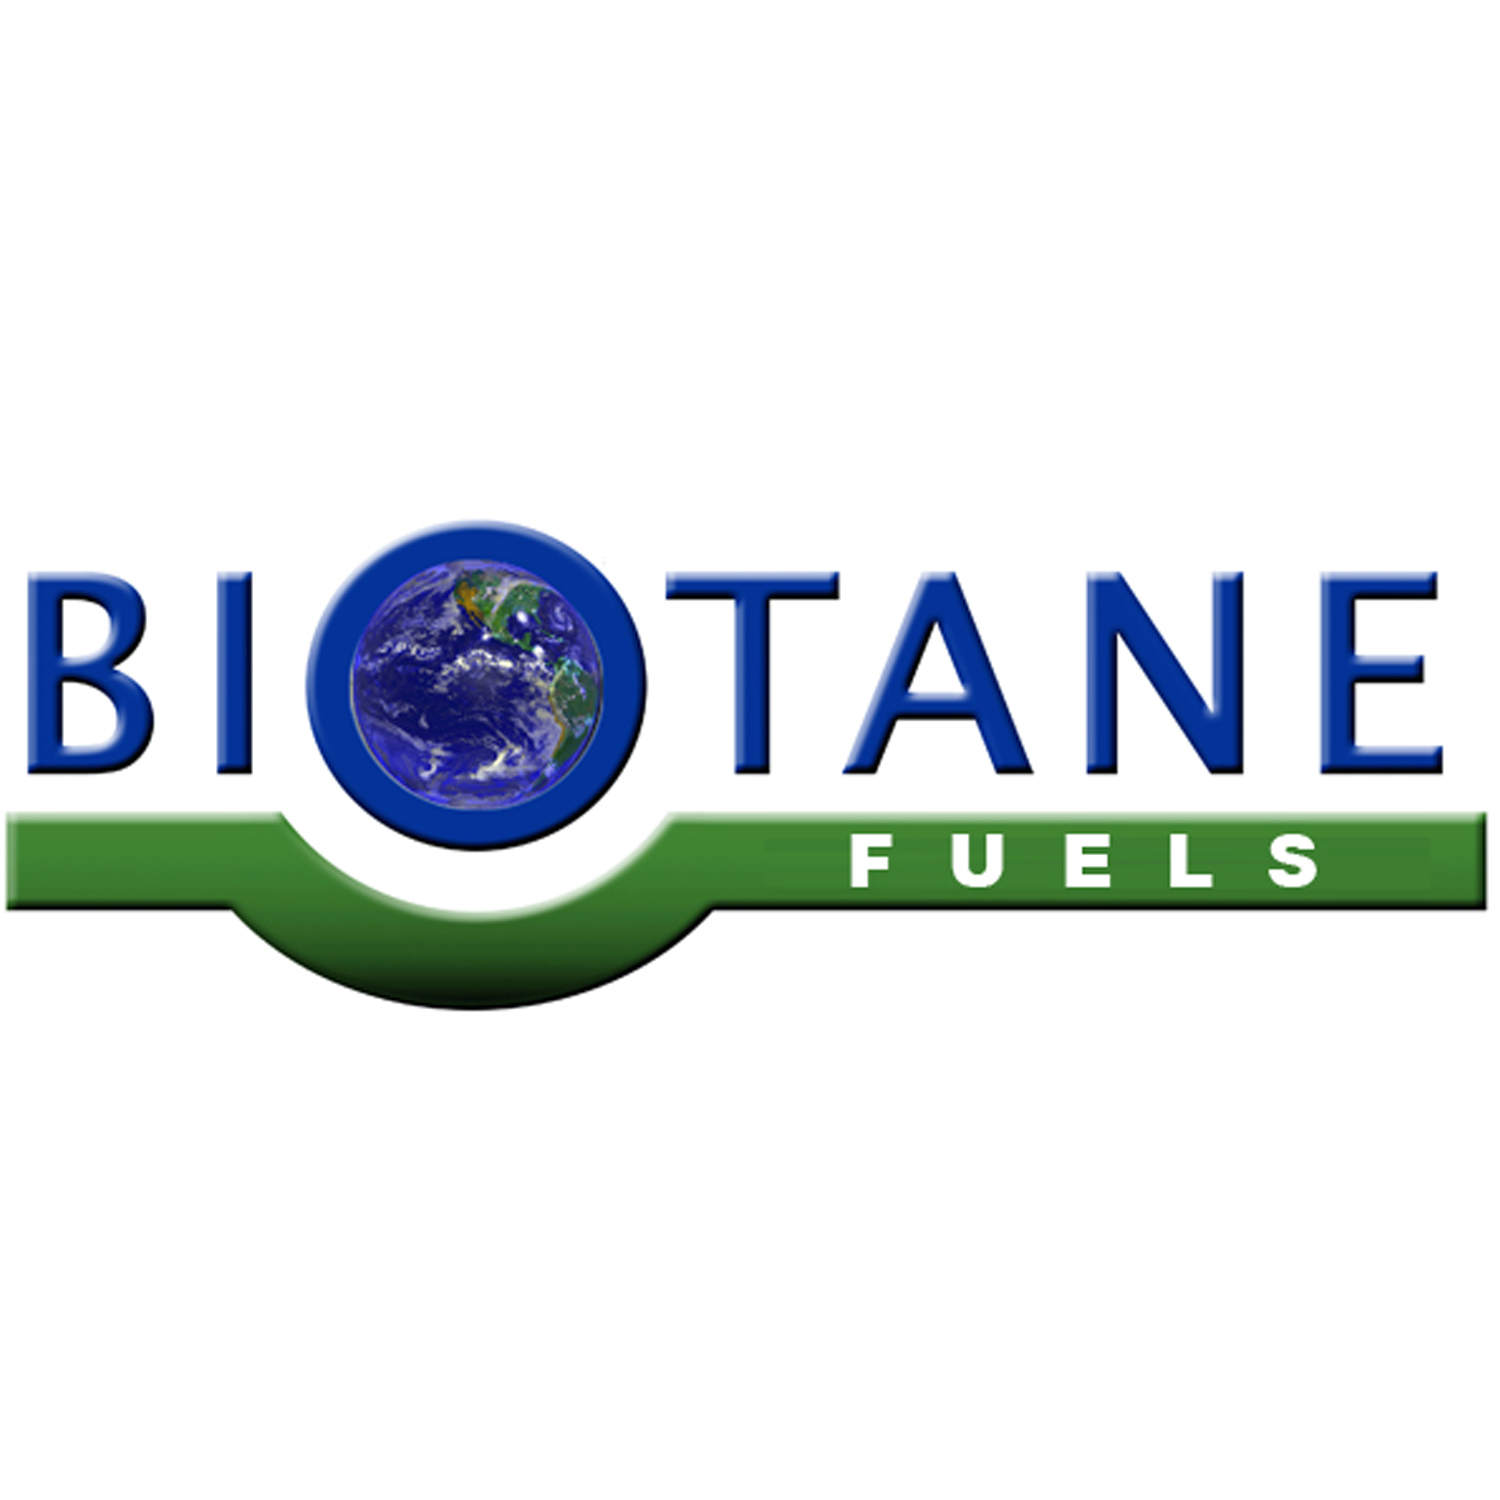 Biotane Fuels - Biotane Fuels represents the new frontier in renewable and alternative fuels emerging on American markets today.